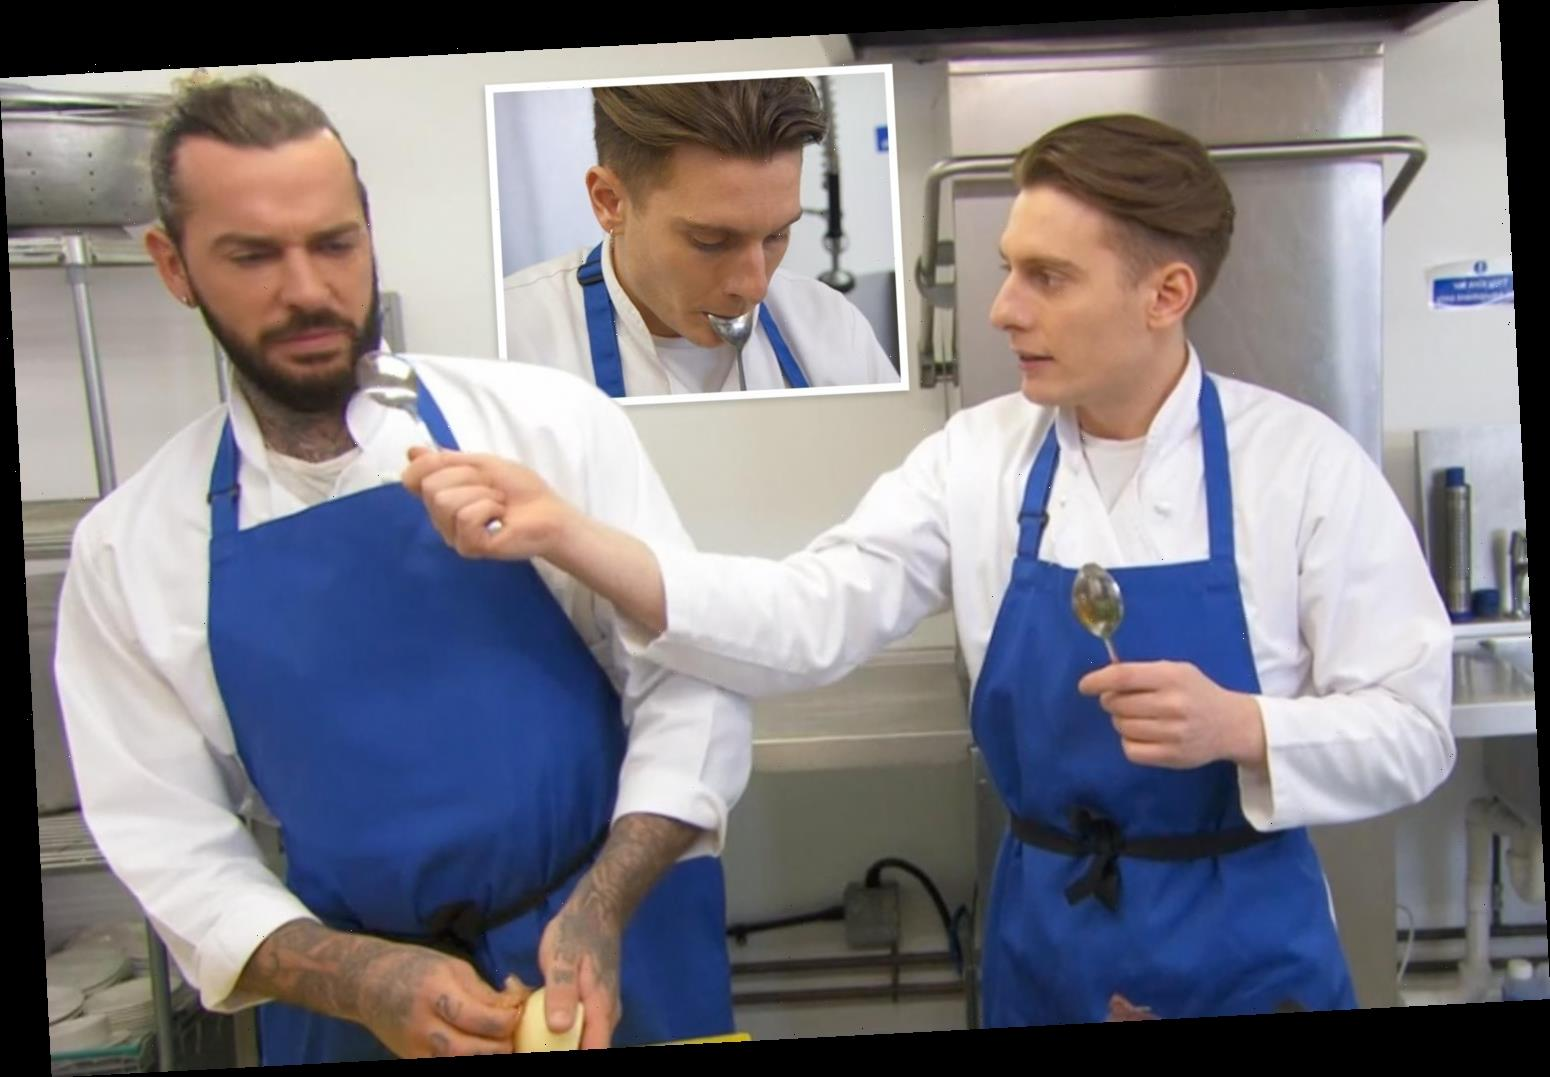 Celebrity Masterchef fans in hysterics as Riyadh Khalaf tries to shove spoon in Pete Wicks' mouth in genius cooking hack